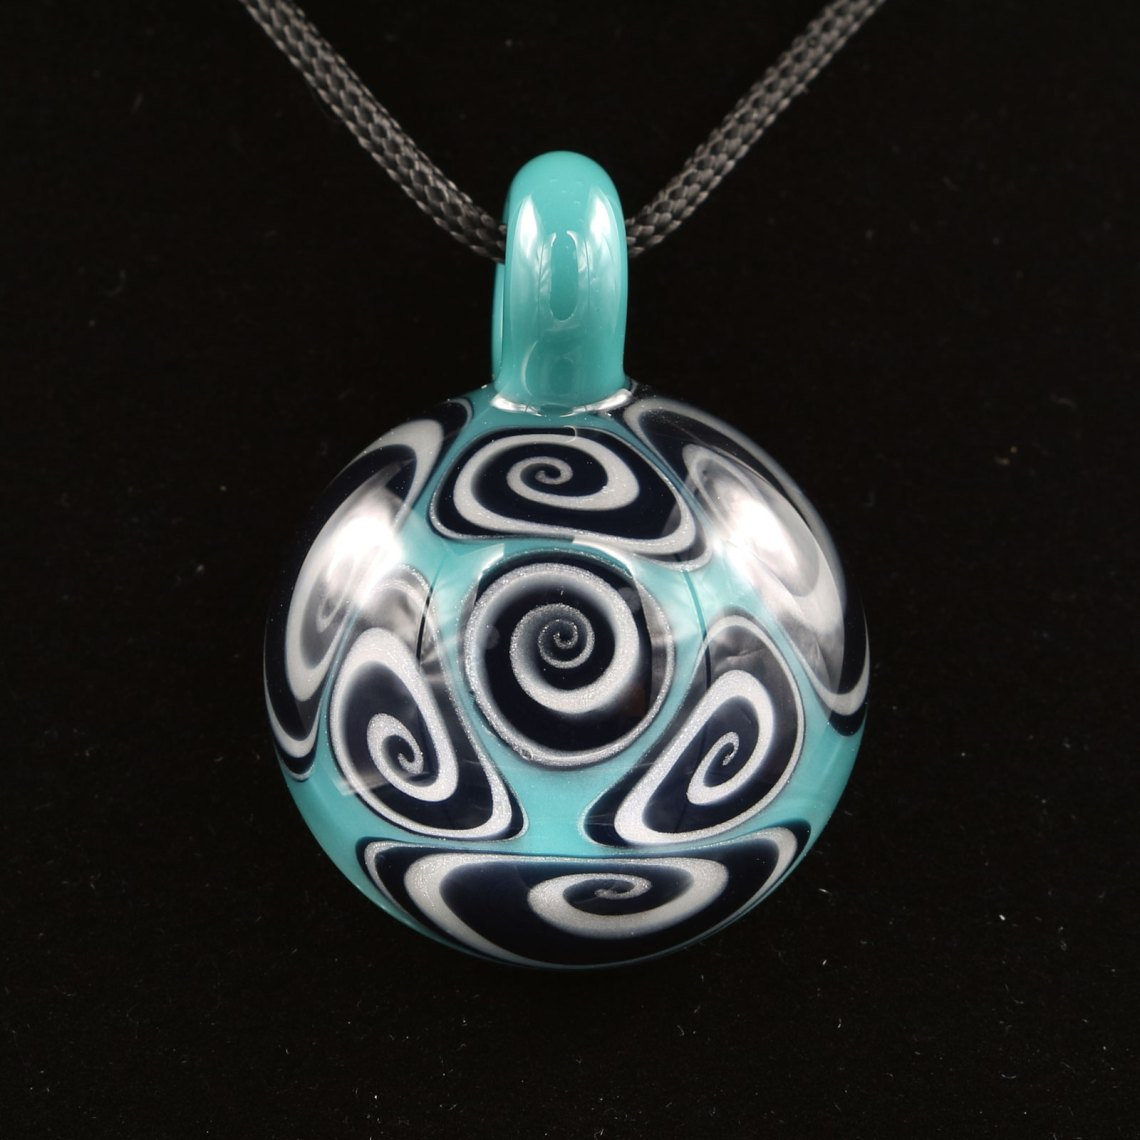 Kaja Glass – 7 Section Opaque Aqua Microspiral Glass Pendant